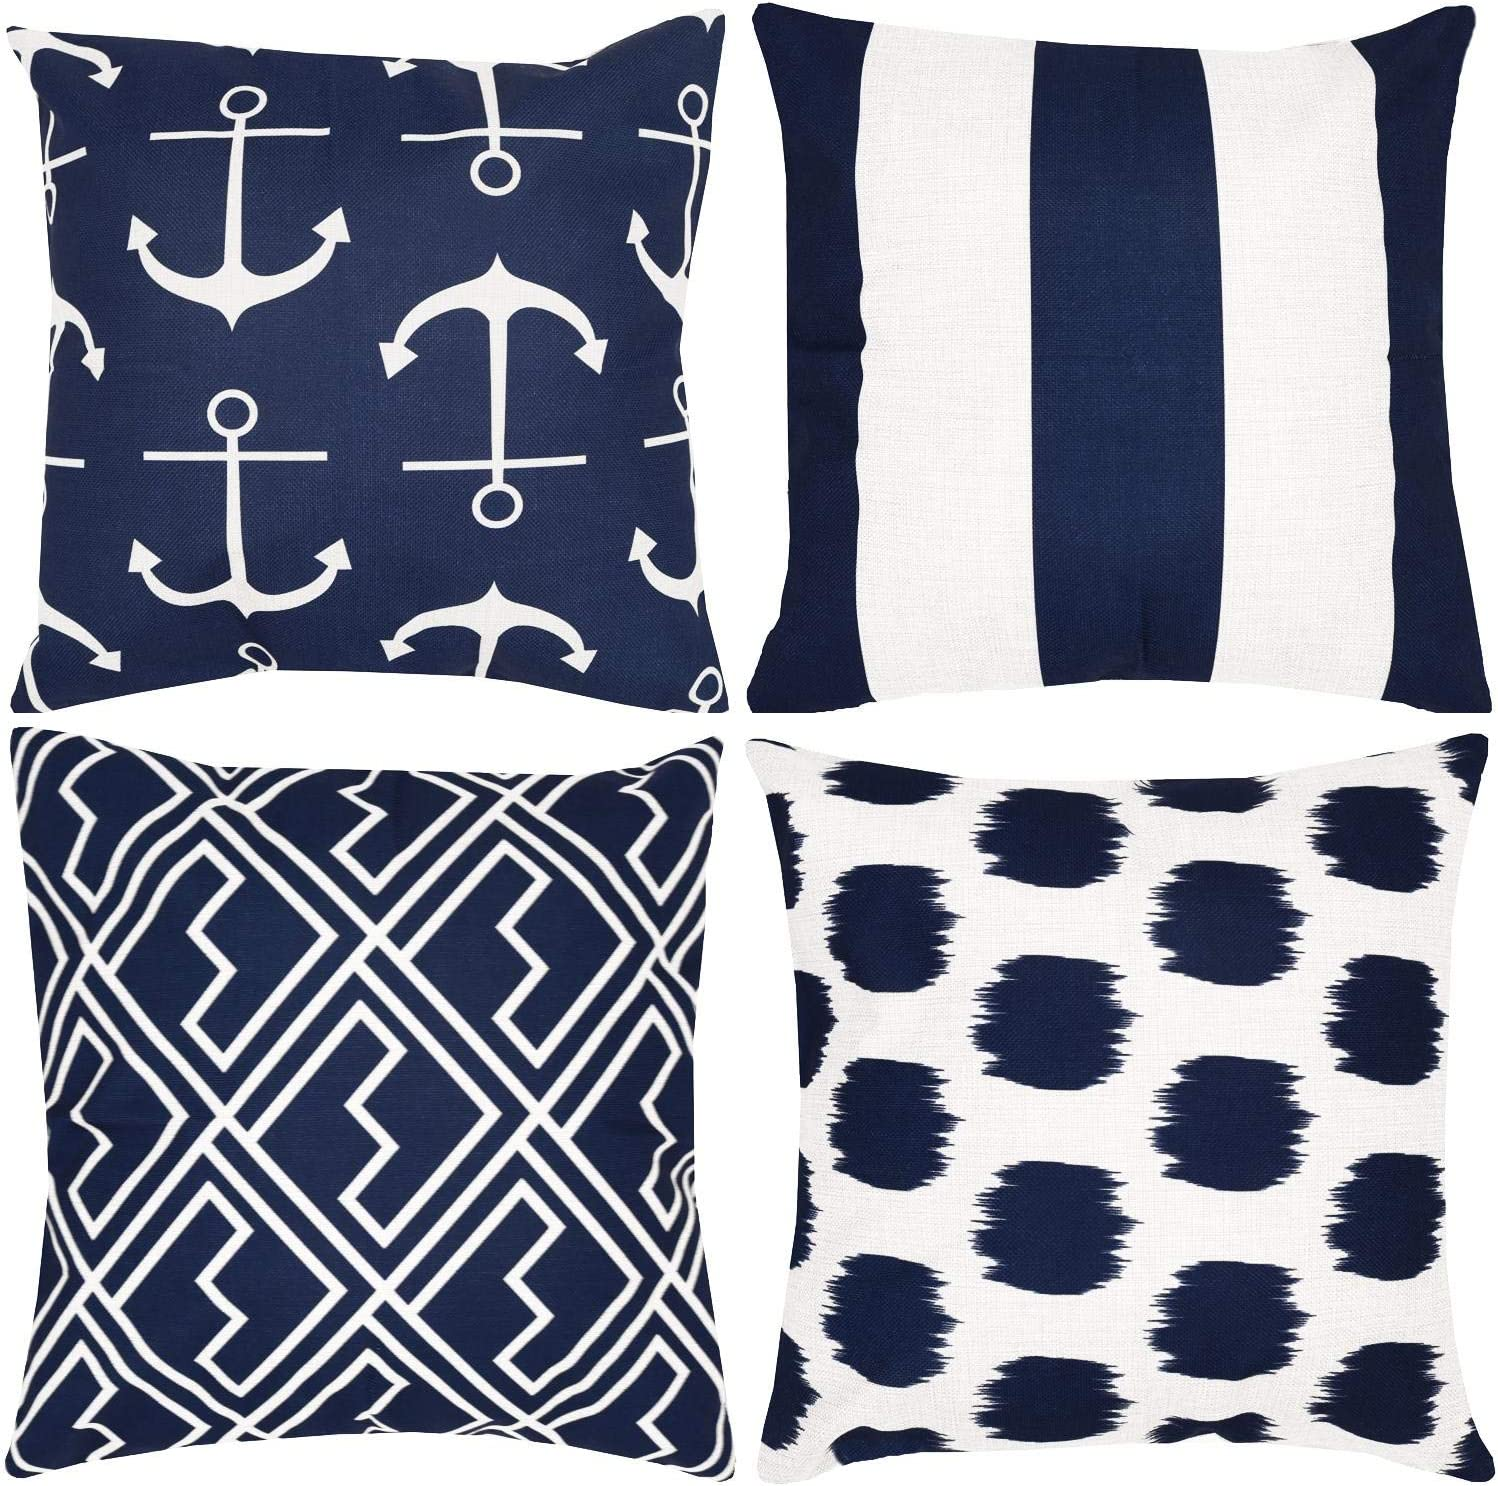 Munzong Set of 4 Nautical Navy Blue and White Anchor Throw Pillows